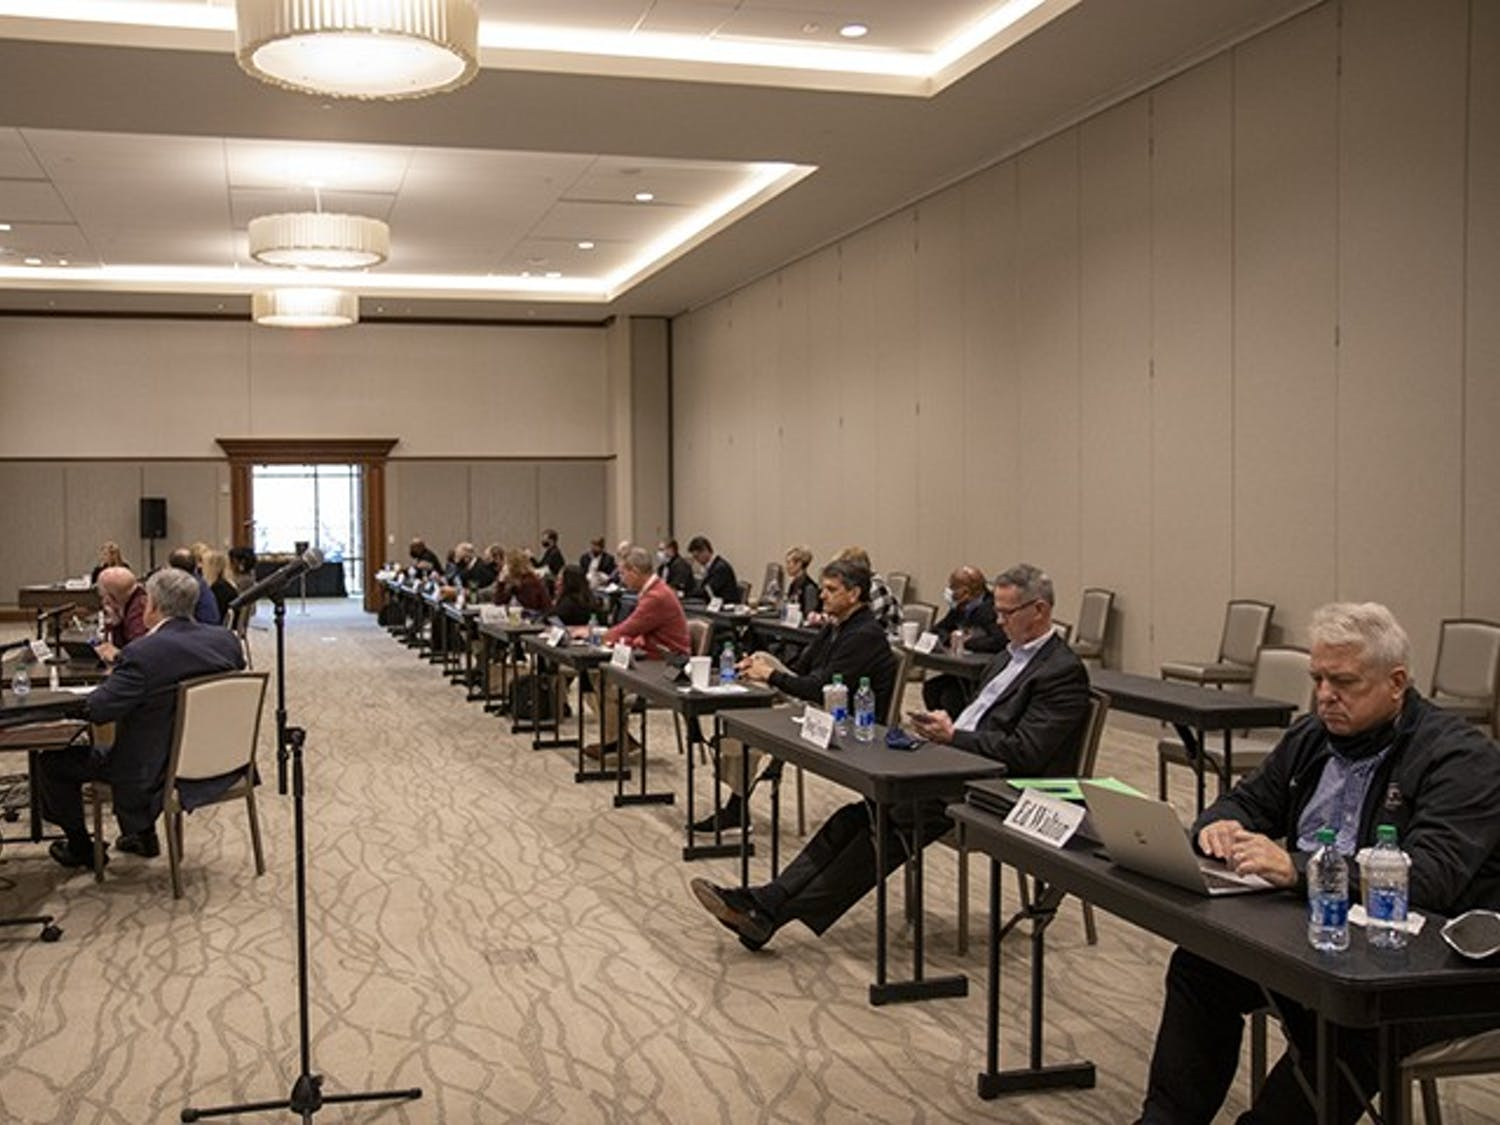 University of South Carolina board of trustee members meet at the Alumni Center during the 2021 board of trustees retreat to discuss issues, concerns and goals for the 2021 year.